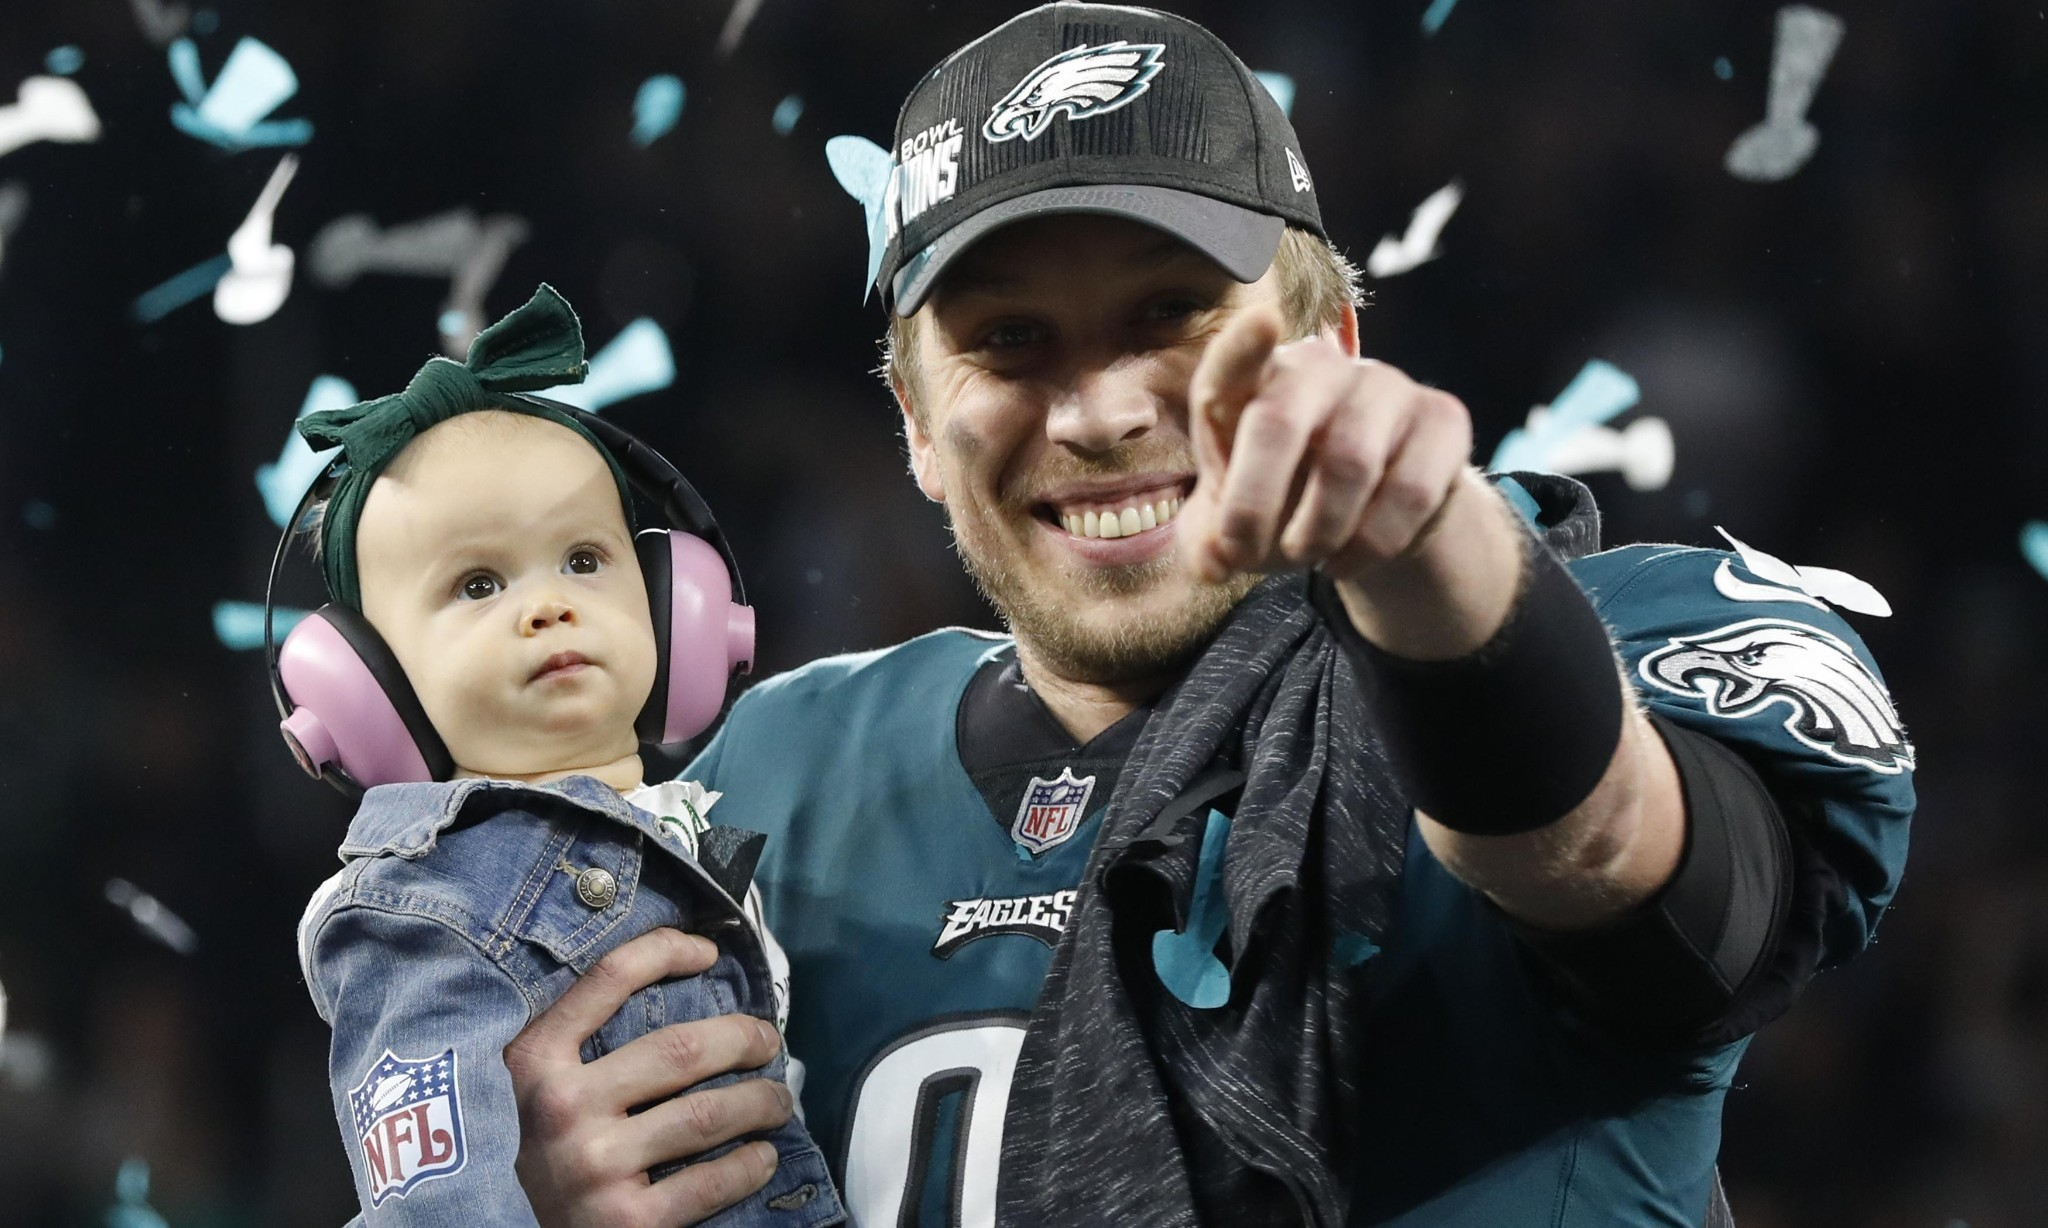 'I have daily struggles': Super Bowl MVP Nick Foles reflective after victory